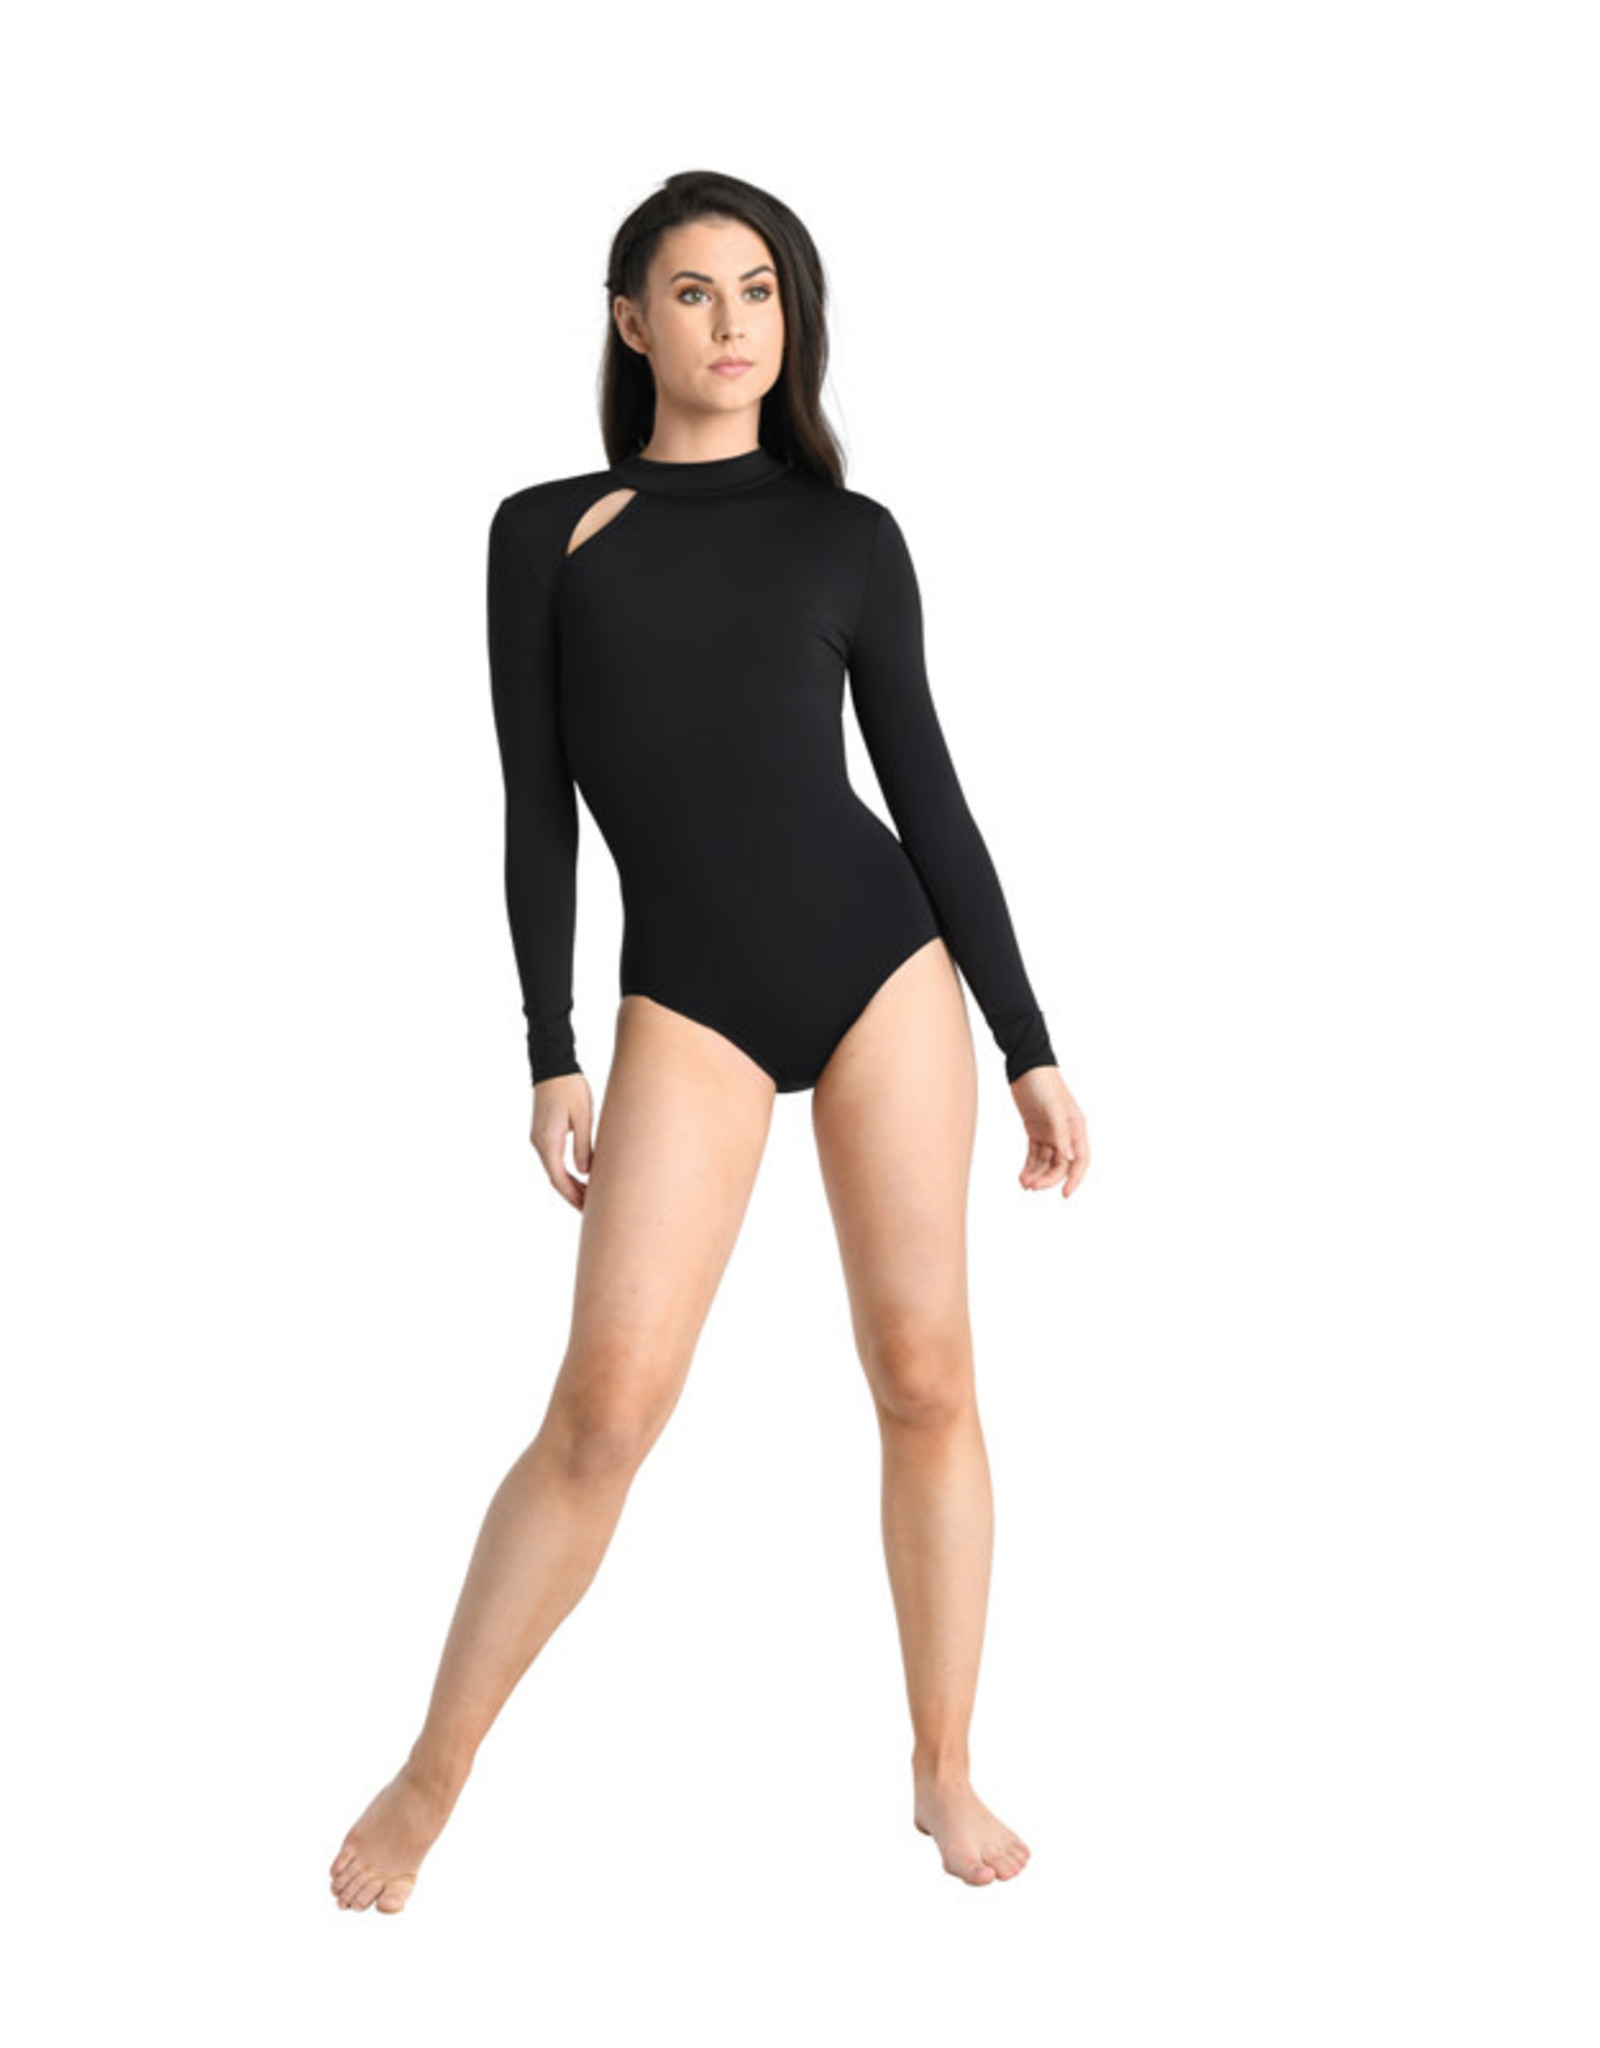 Danshuz 19119A Long sleeve leotard with stand-up collar and right-side cut-out at front